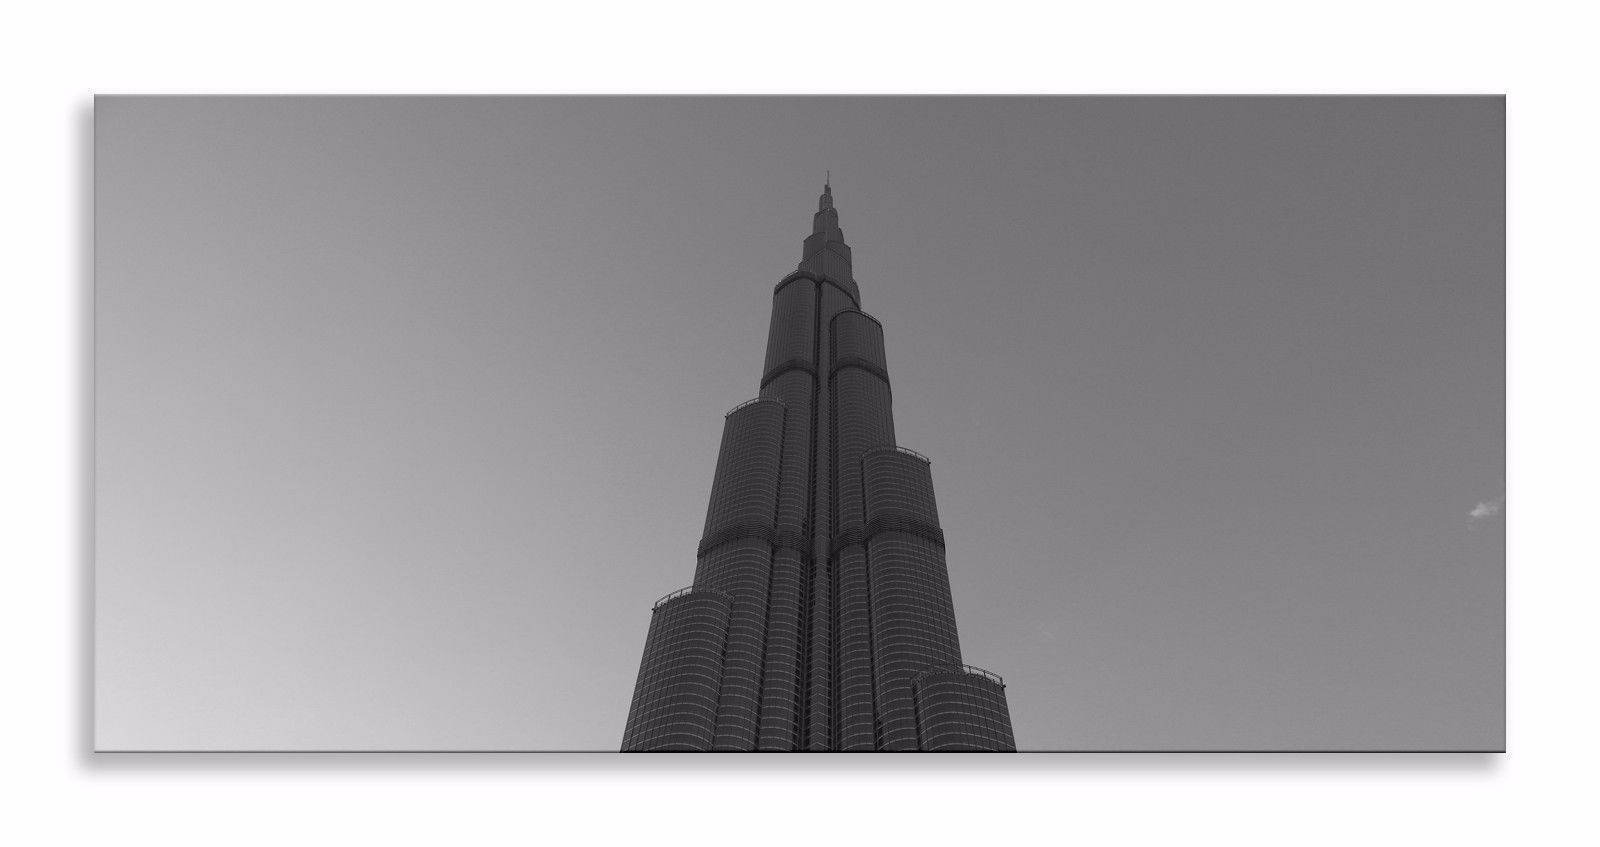 Check out our new Canvas Art  http://thousandface.myshopify.com/products/burj-kalifa-canvas-abstract-black-white-panorama-wall-art-picture-home-decor?utm_campaign=social_autopilot&utm_source=pin&utm_medium=pin  #canvas art # thousandface